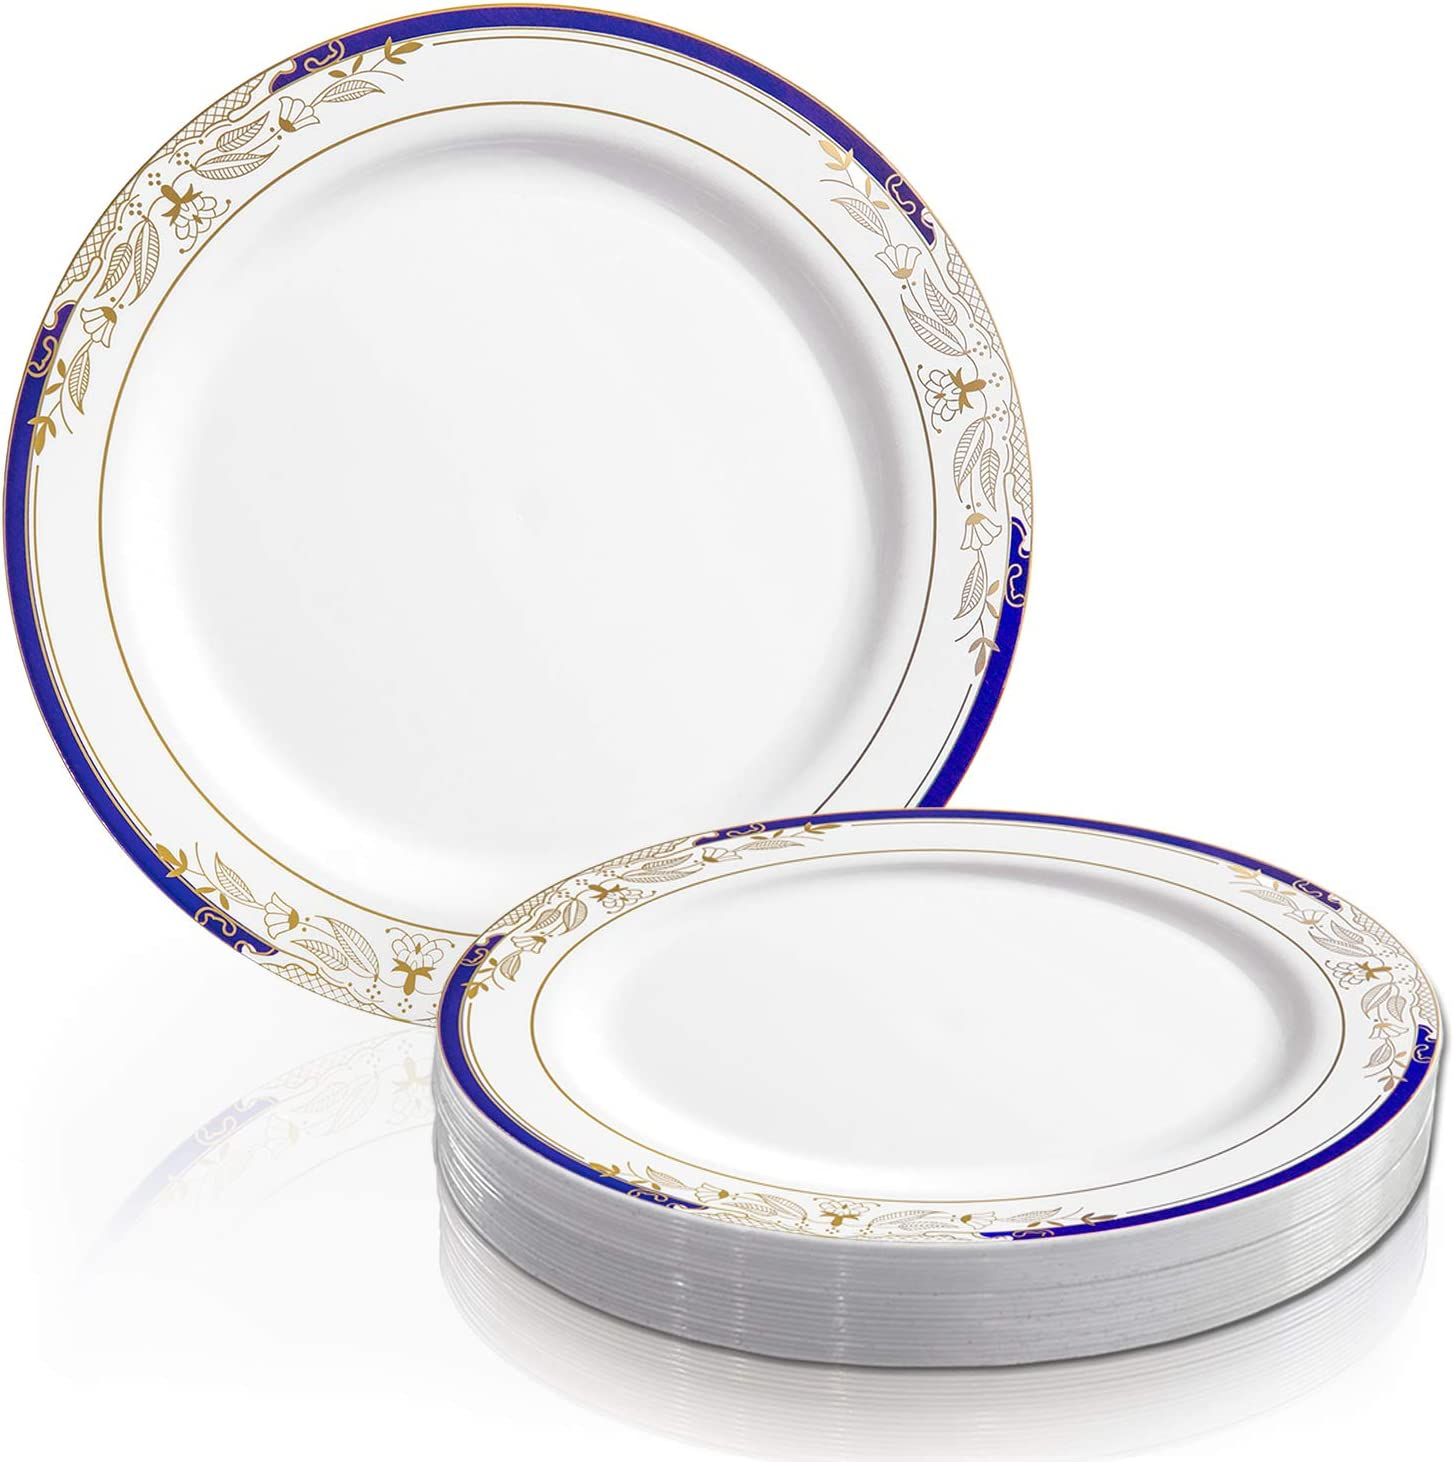 """Elegant Disposable Plastic Dinner Plates 120 Pcs - 10.25"""" Heavy Duty Fancy White with Blue & Gold Rim Dinner Plates - Reusable Bulk Party Supplies For Wedding, Easter, Birthday & All Occasions 716DQRAcDbL"""